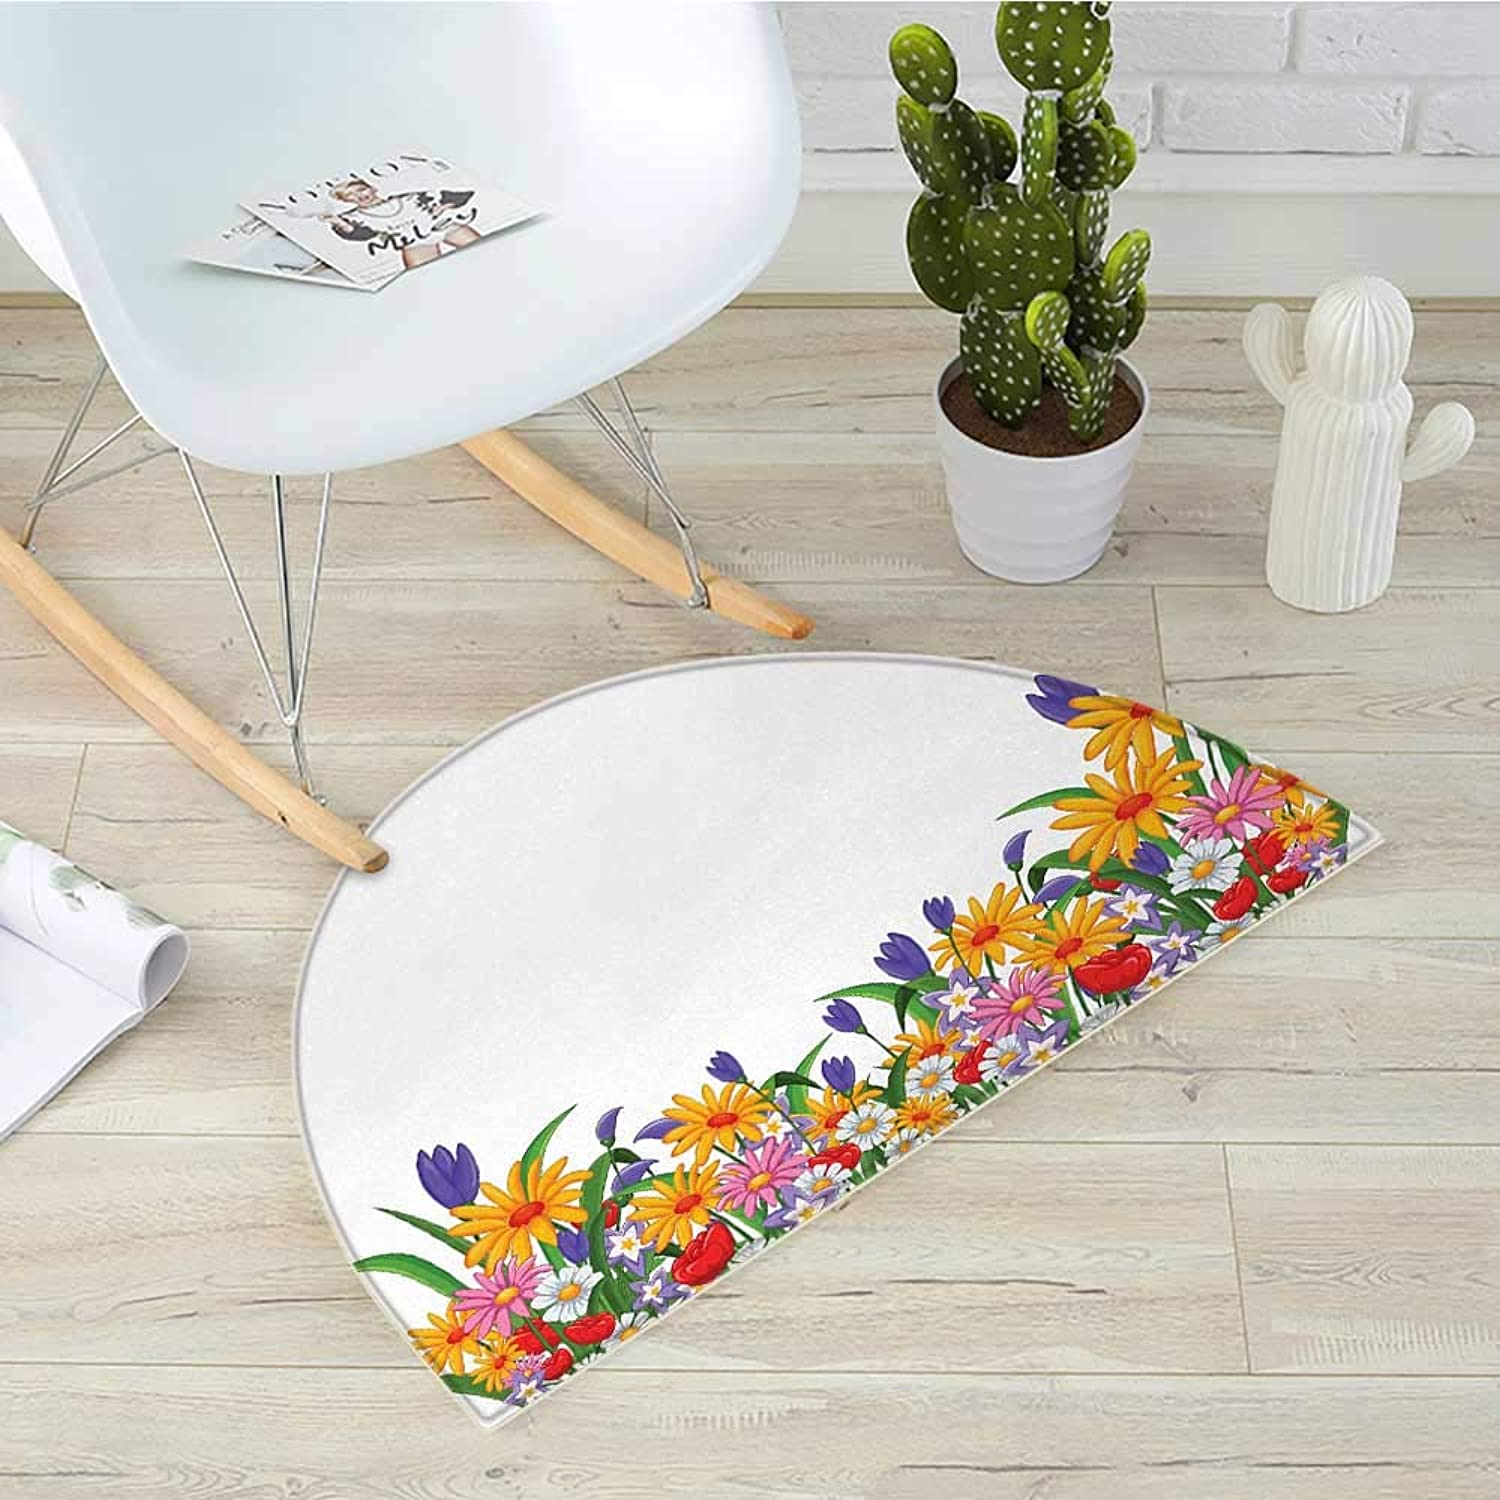 Flower Half Round Door mats Cartoon Style Print with Garden Bedding Plants Floral Daisies purples Tulips Nature Bathroom Mat H 39.3  xD 59  Multicolor